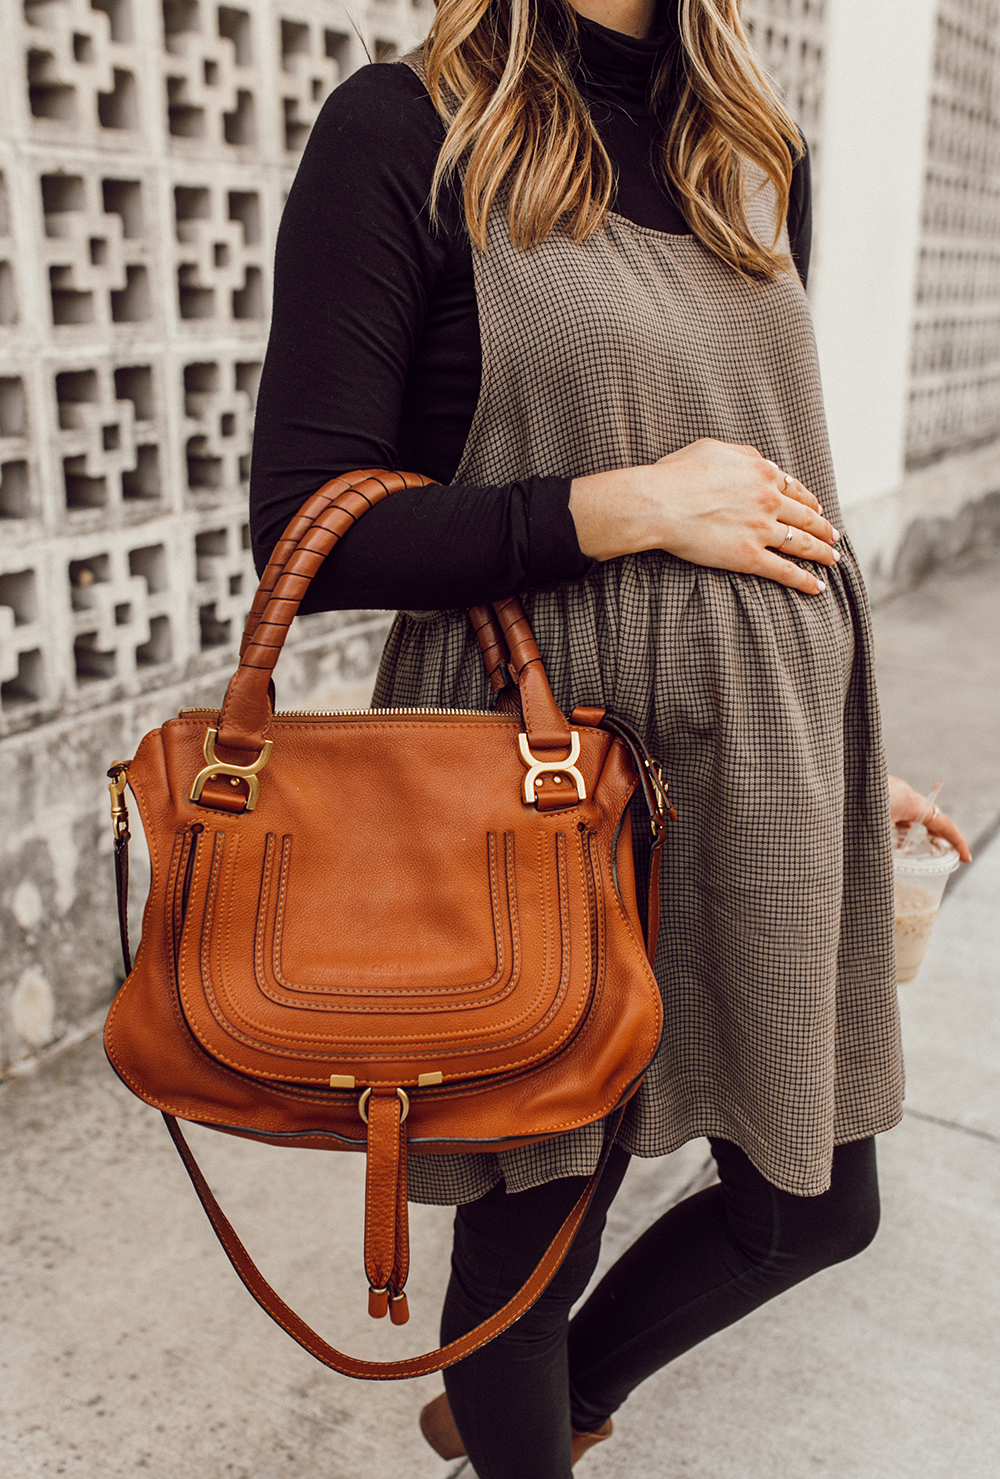 livvyland-blog-olivia-watson-austin-texas-third-trimester-pregnancy-maternity-outfit-idea-chloe-marcie-medium-1